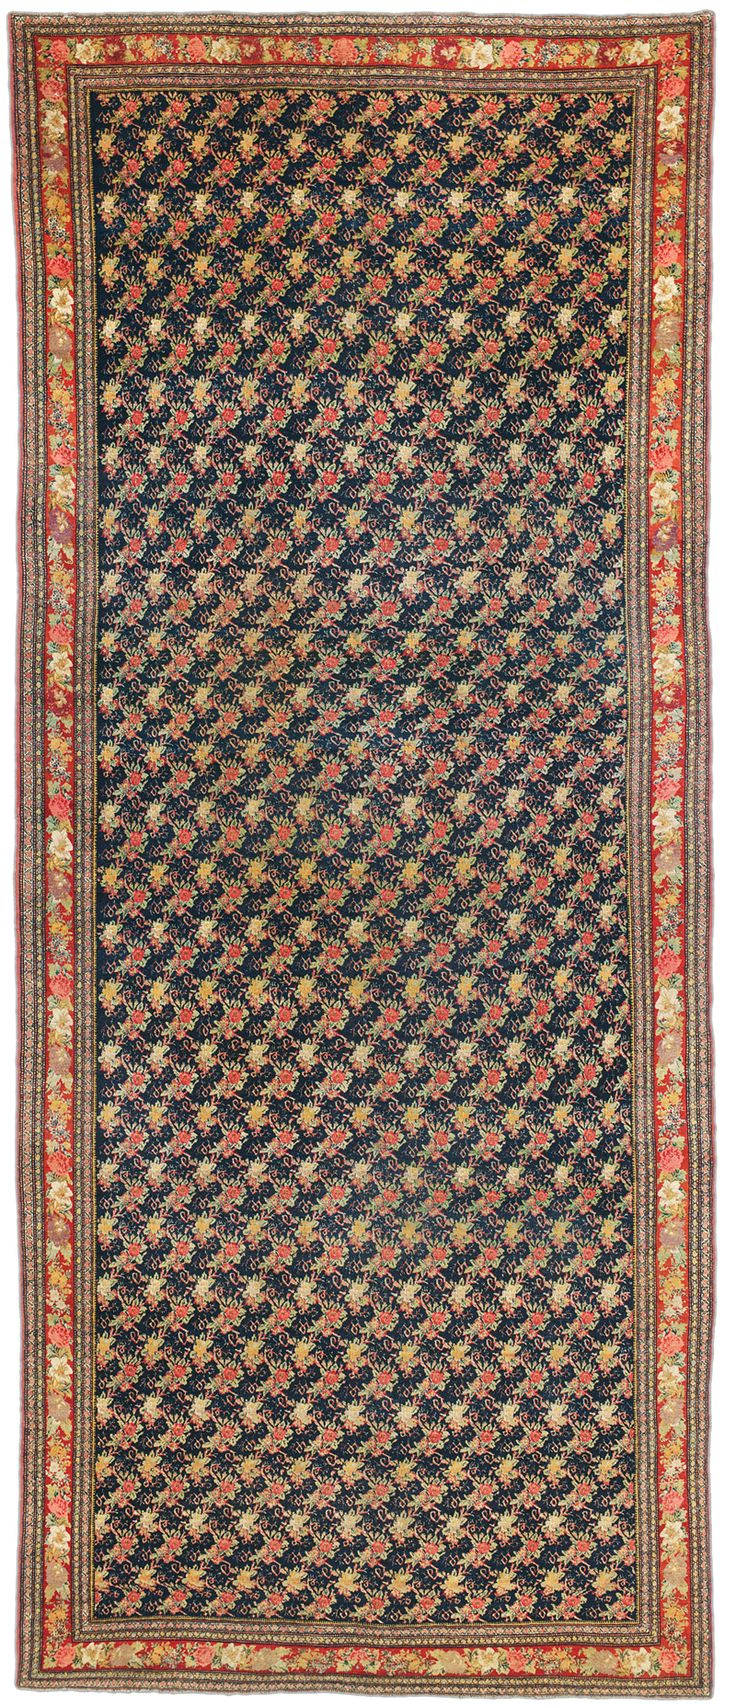 Bidjar gallery rug, 19th C (3rd Q)